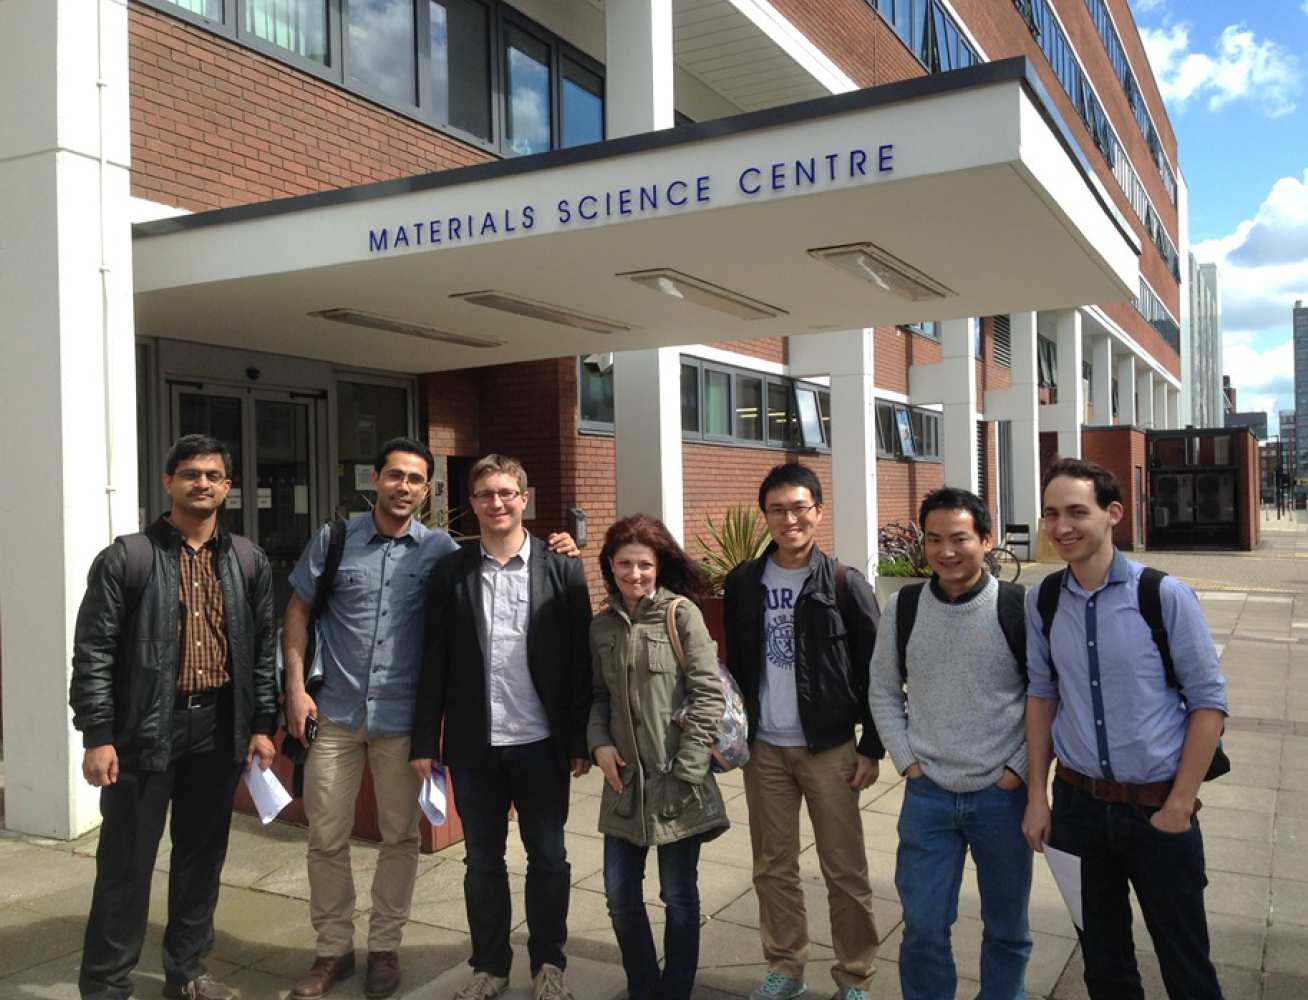 HexMat PDRAs at the Materials Science Centre, University of Manchester (left to right): Dr Rajesh Korla, Dr Hamid Abdolvand (Oxford), Dr Zoltan Szaraz, Dr Eleni Sarakinou (Manchester), Dr Terry Jun, Dr Zhen Zhang and Dr Thomas White (Imperial).